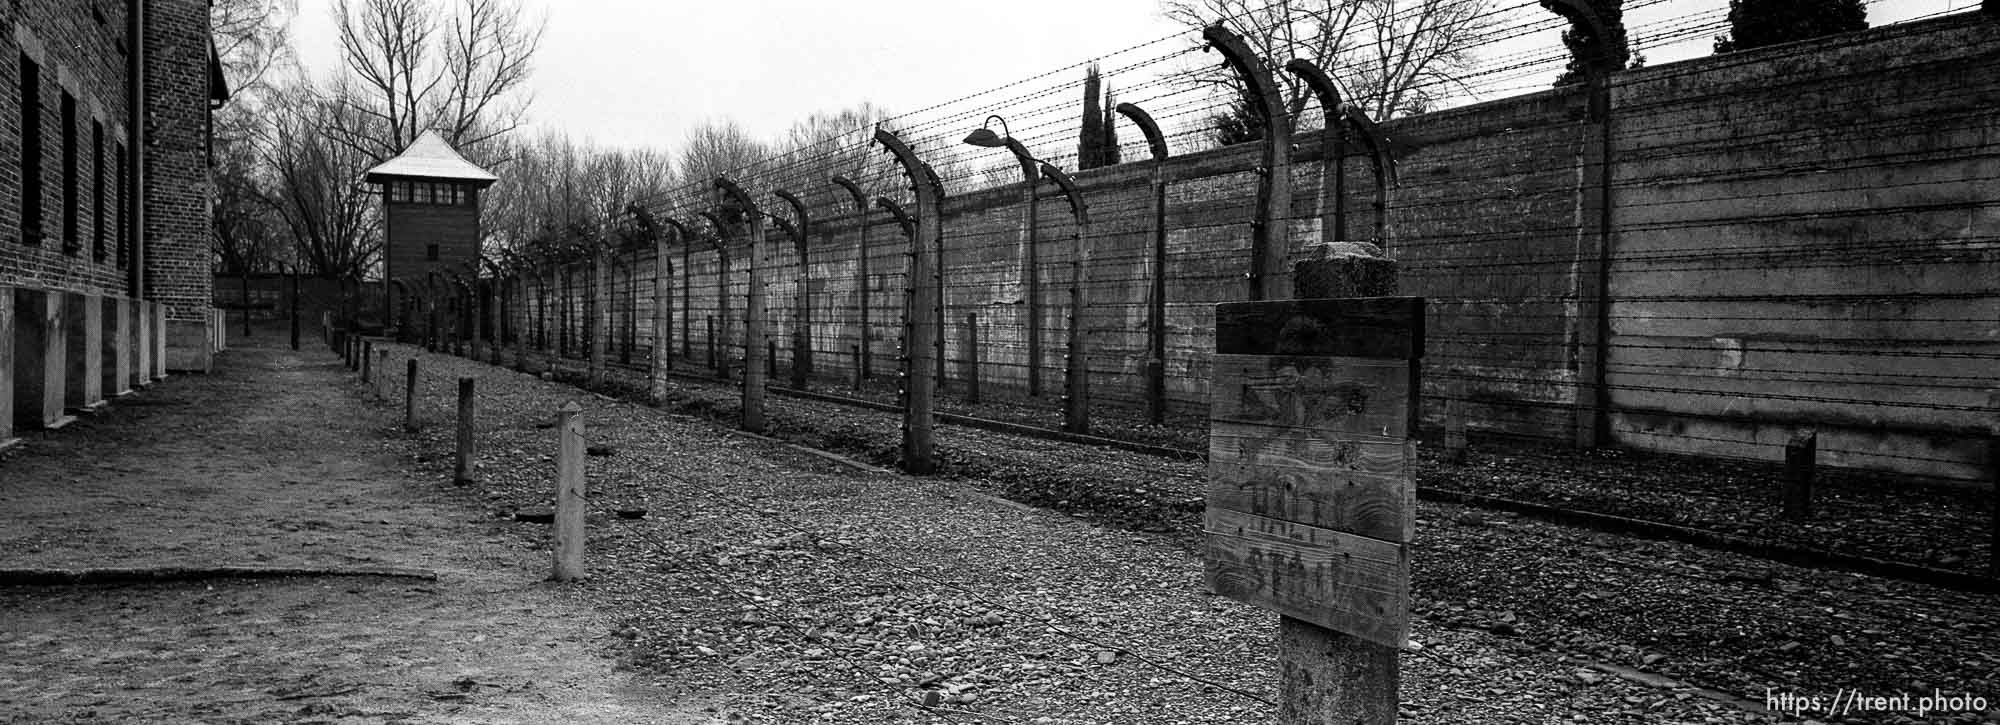 at the Auschwitz Concentration Camp.